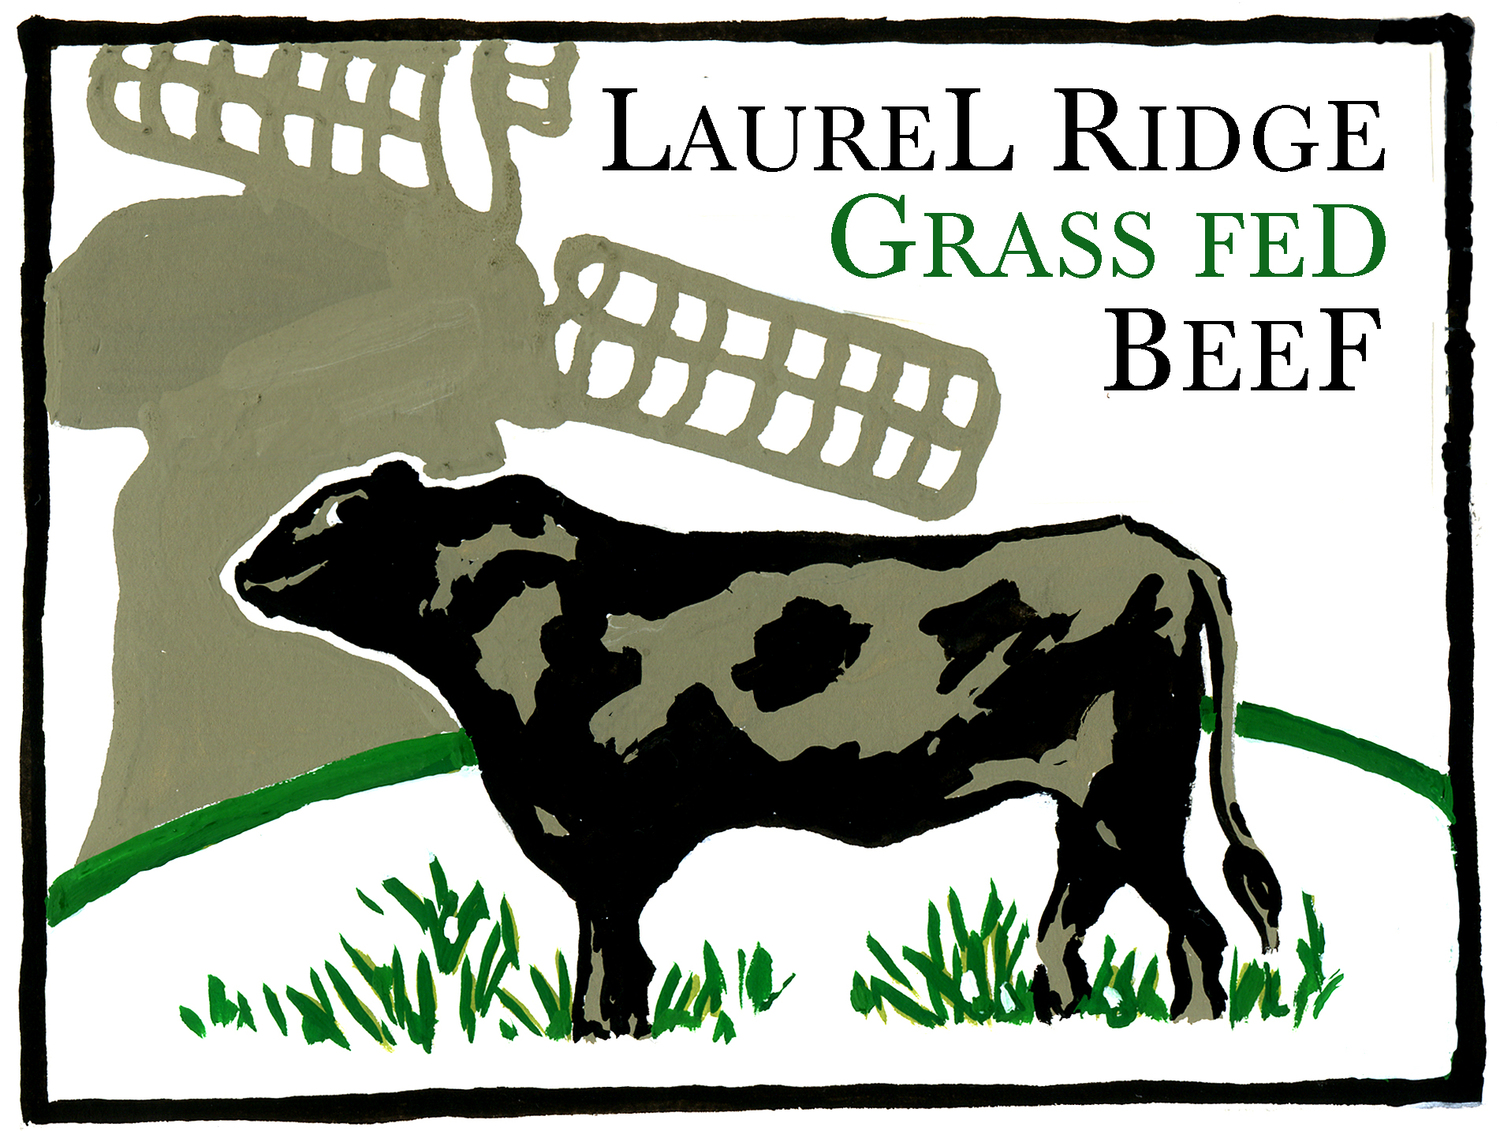 Laurel Ridge Grass-Fed Beef